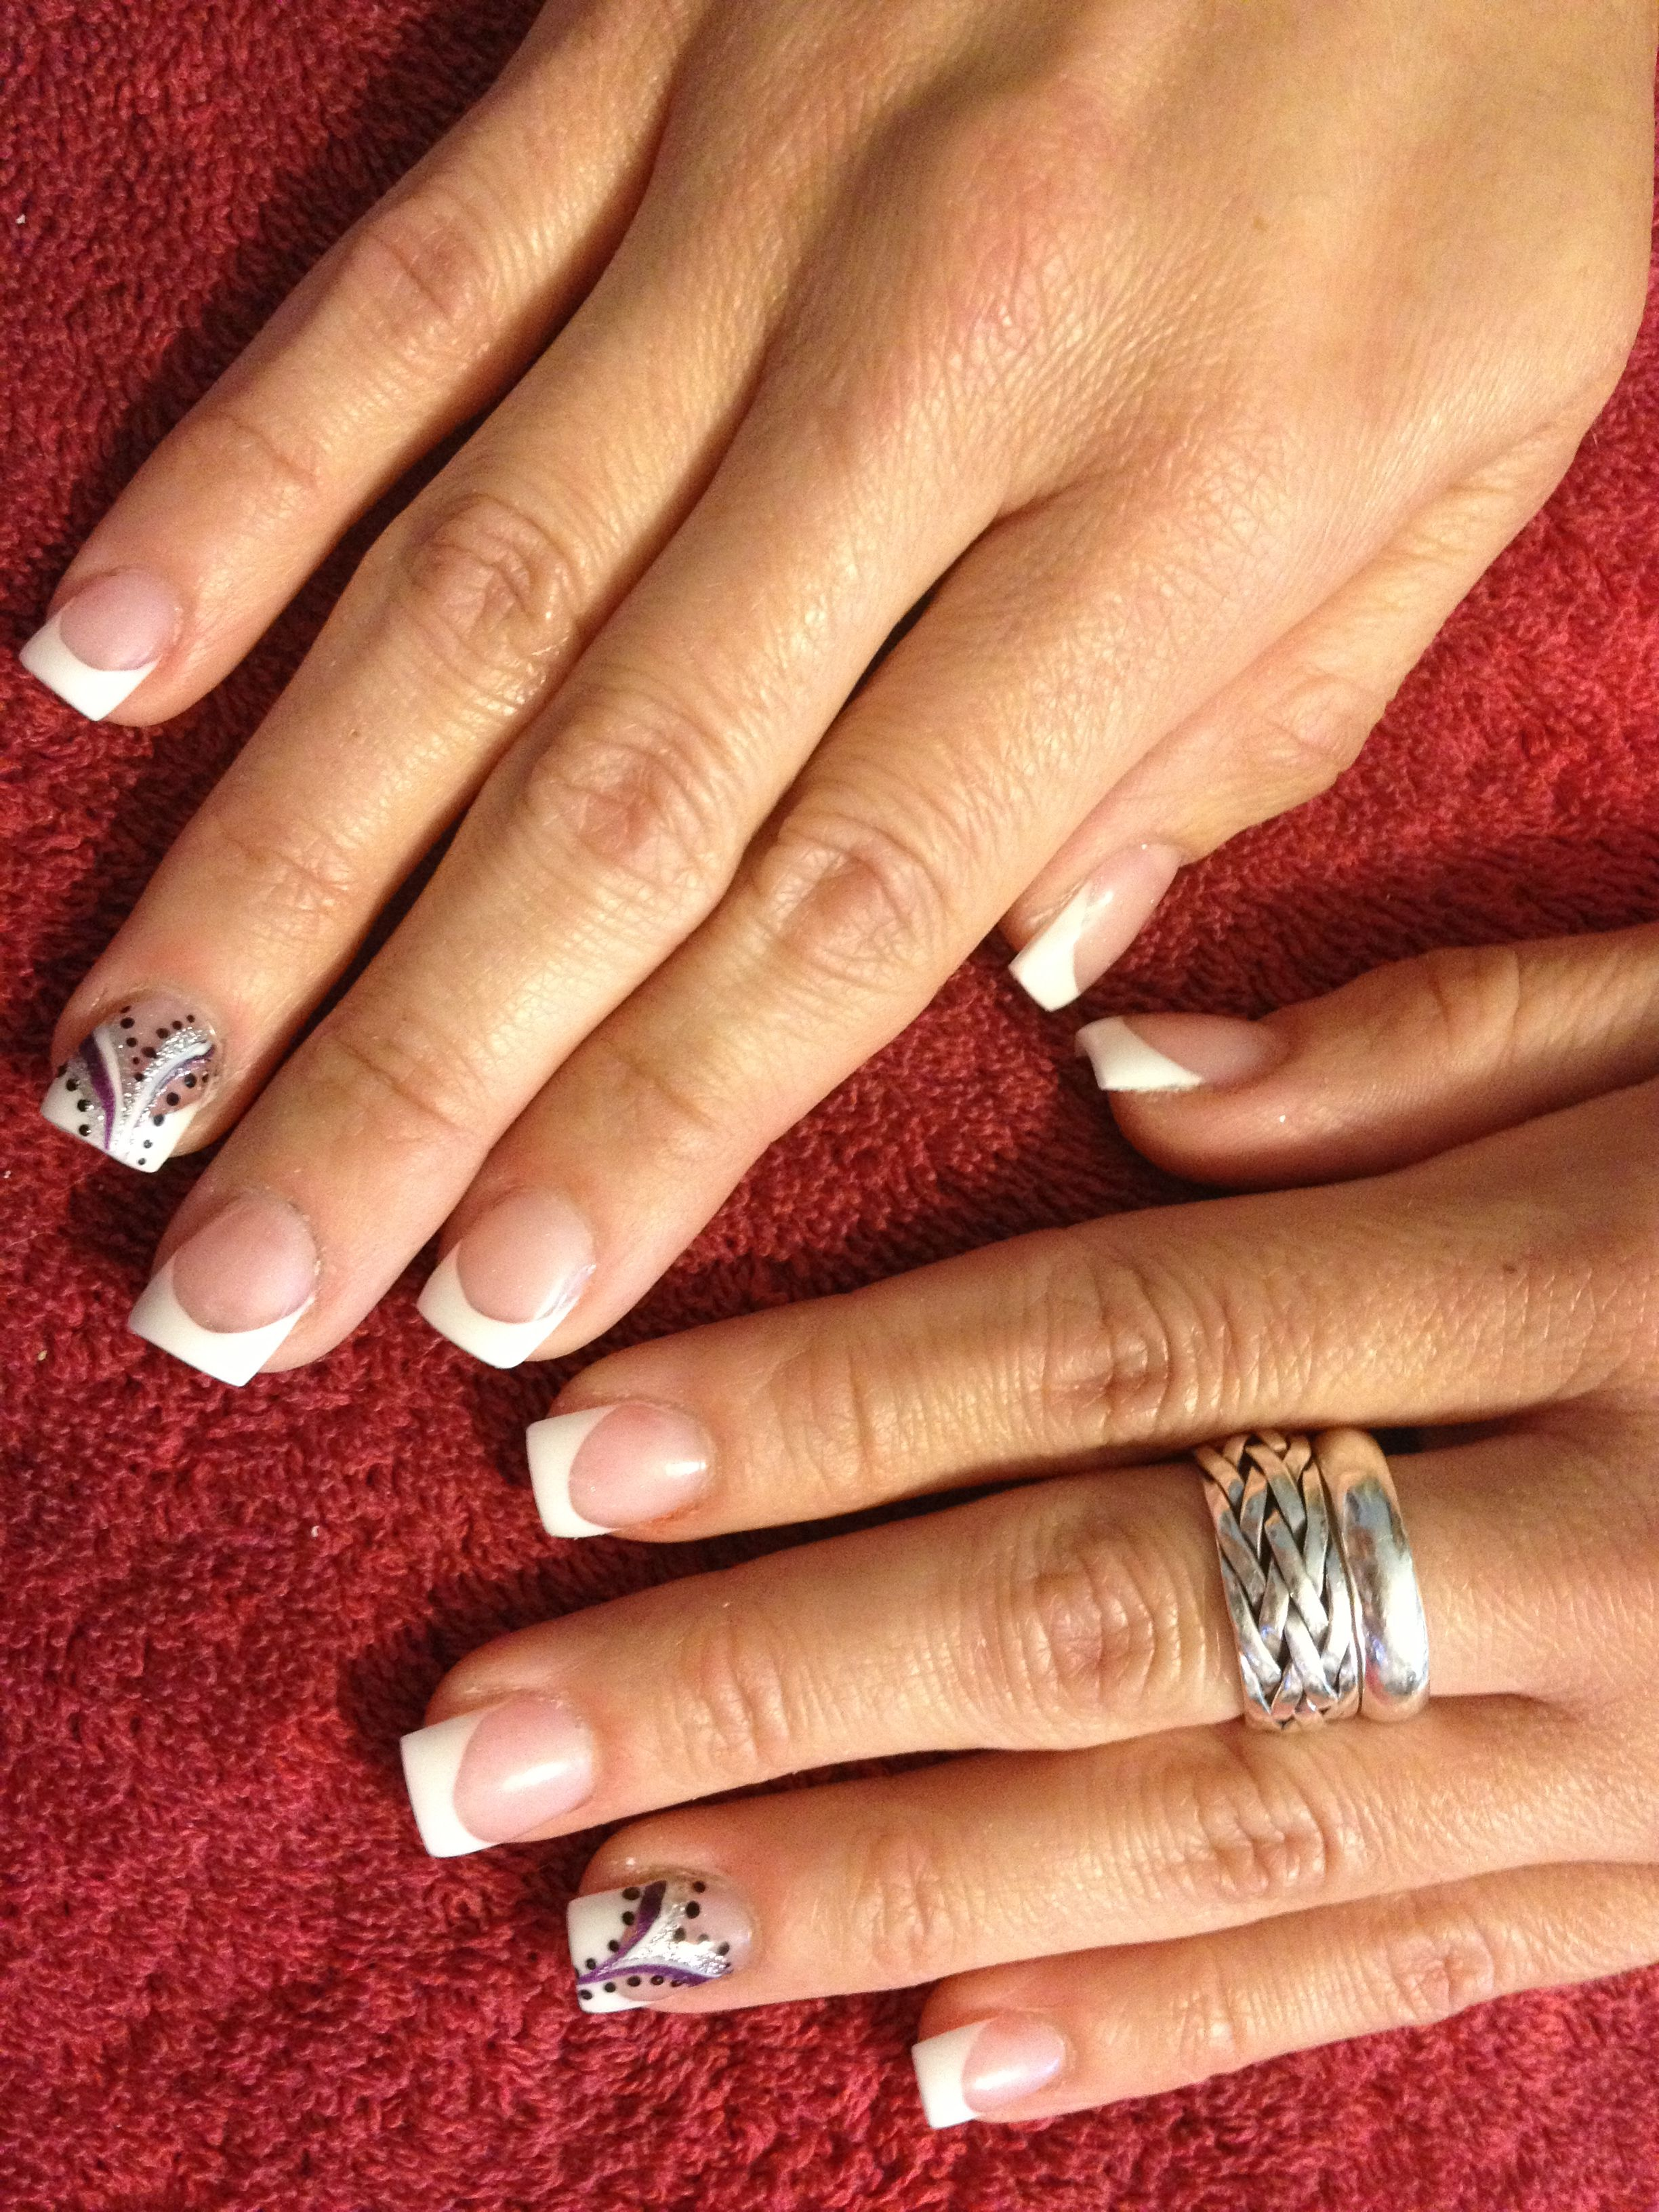 Pink and white acrylic nails saras nail designs pinterest pink and white acrylic nails prinsesfo Image collections